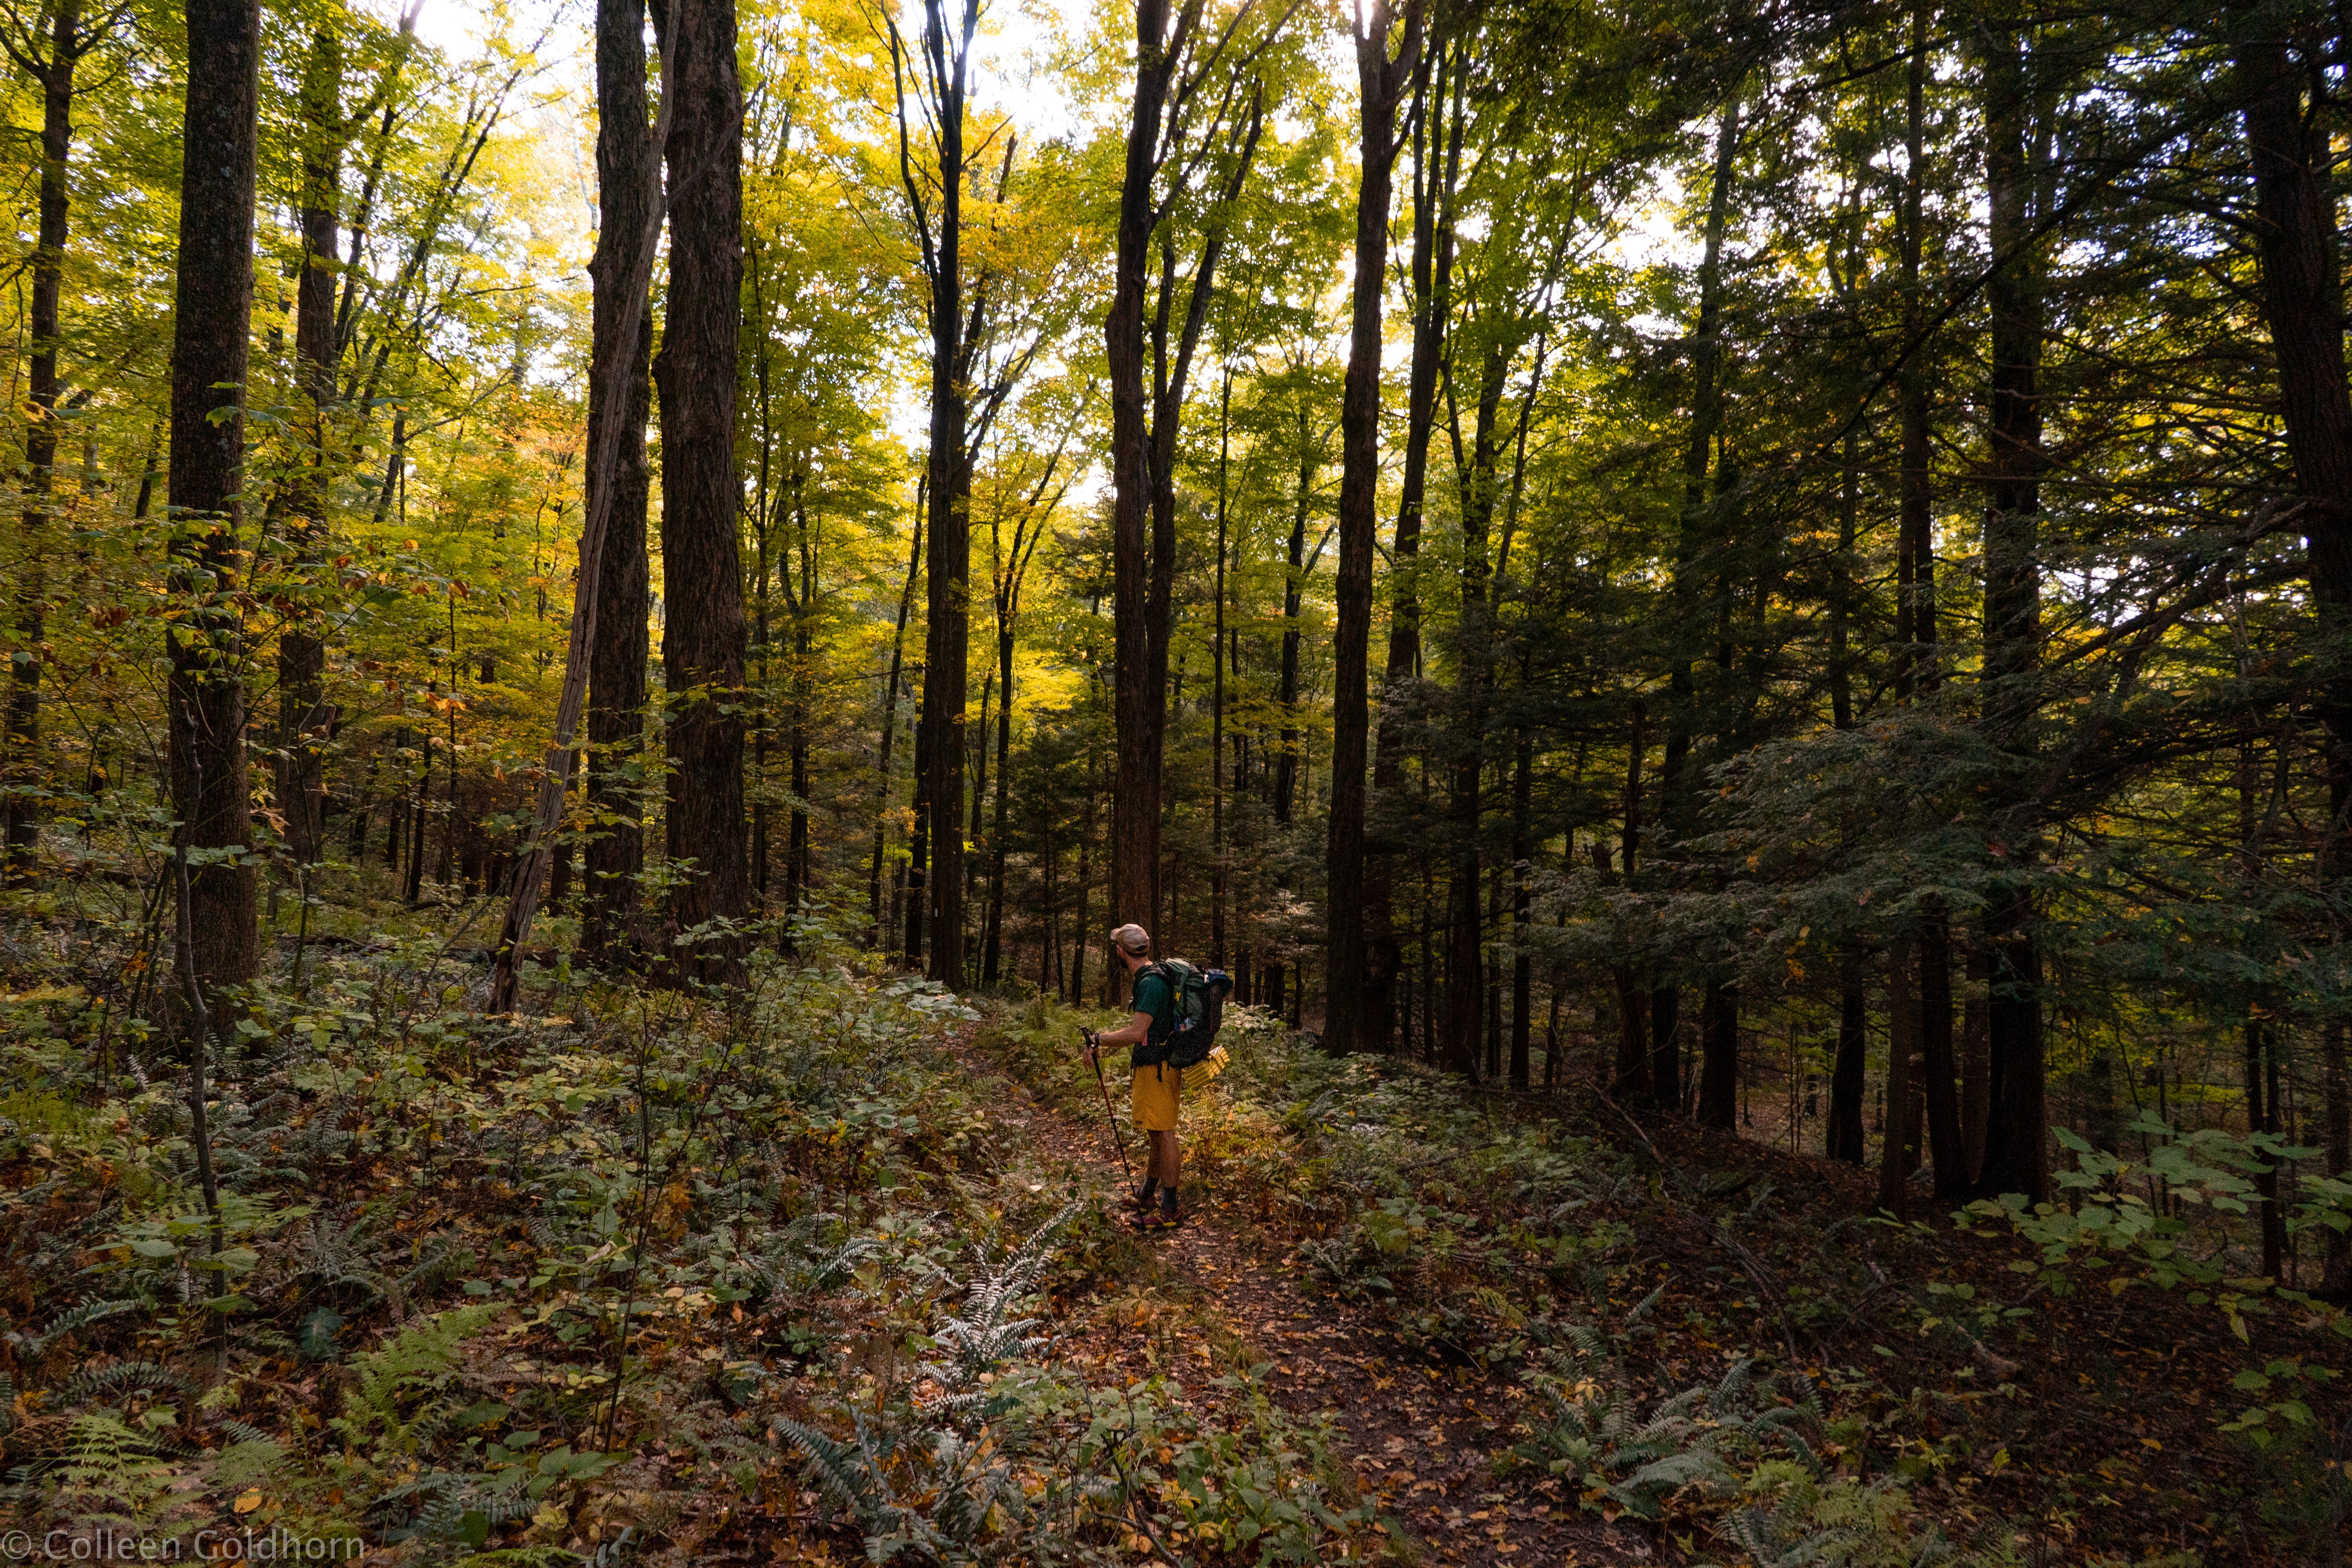 Closing the Gaps in Our National Scenic Trails: An Interview With Jim Kern - The Trek